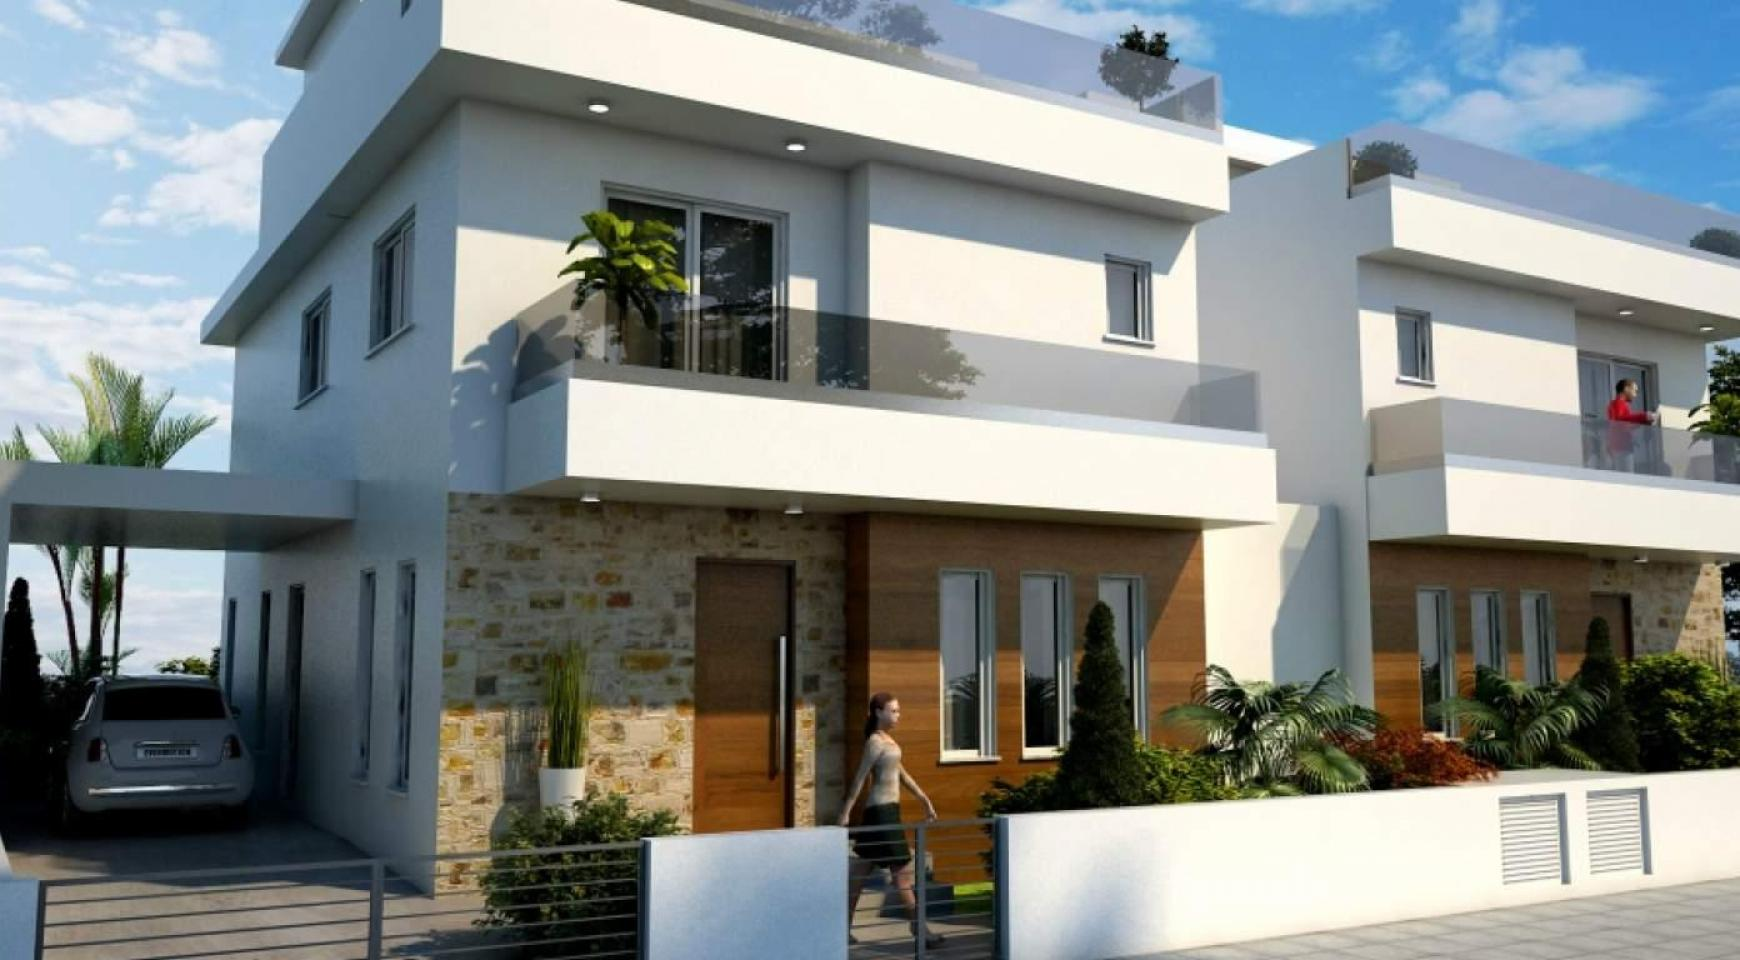 4 Bedroom House in Leivadia Area - 8